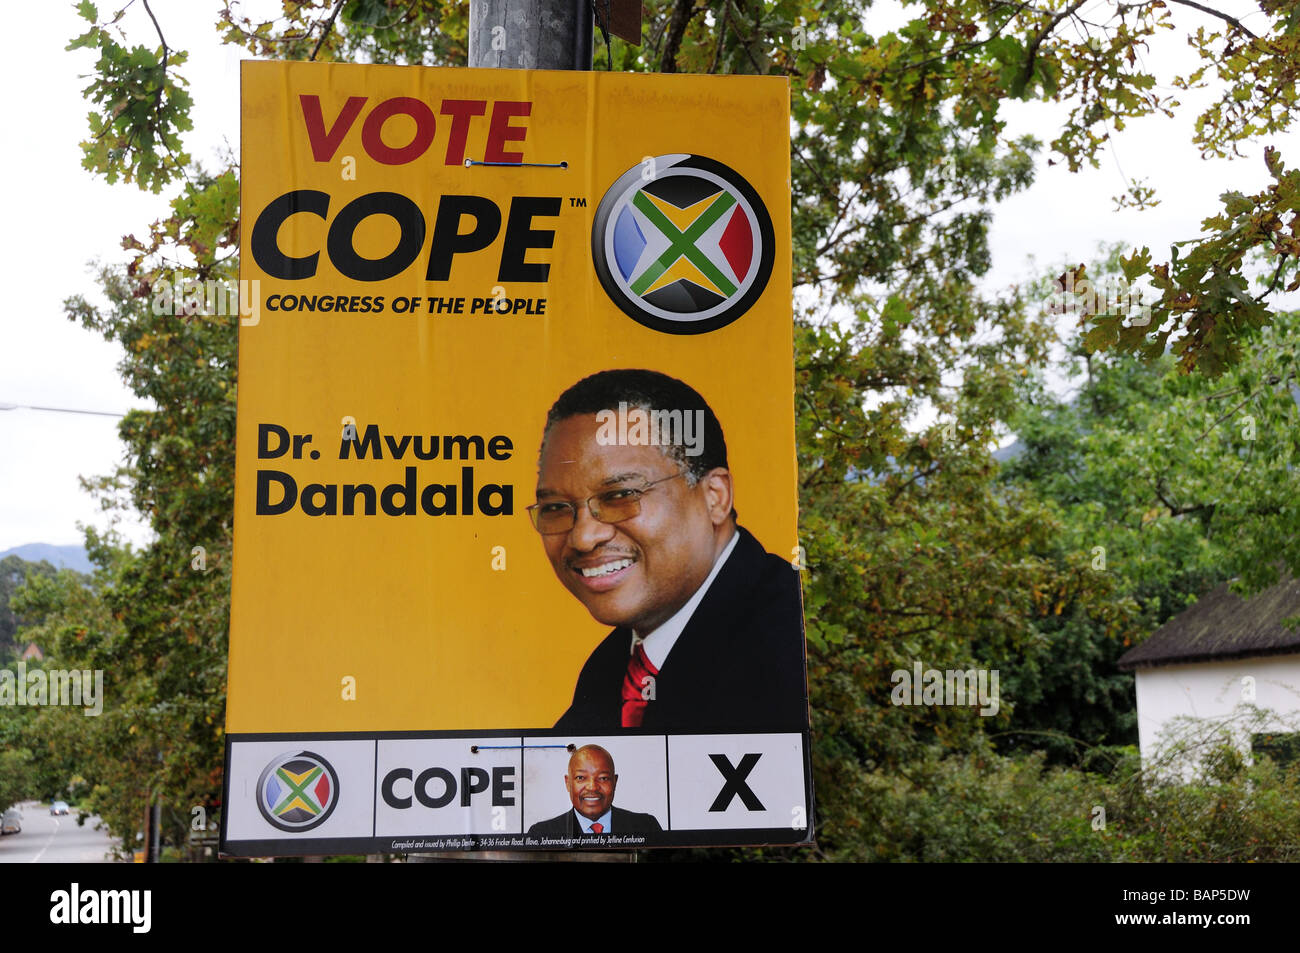 Election Poster for Dr Muvume Dandala Cope Party  South Africa - Stock Image